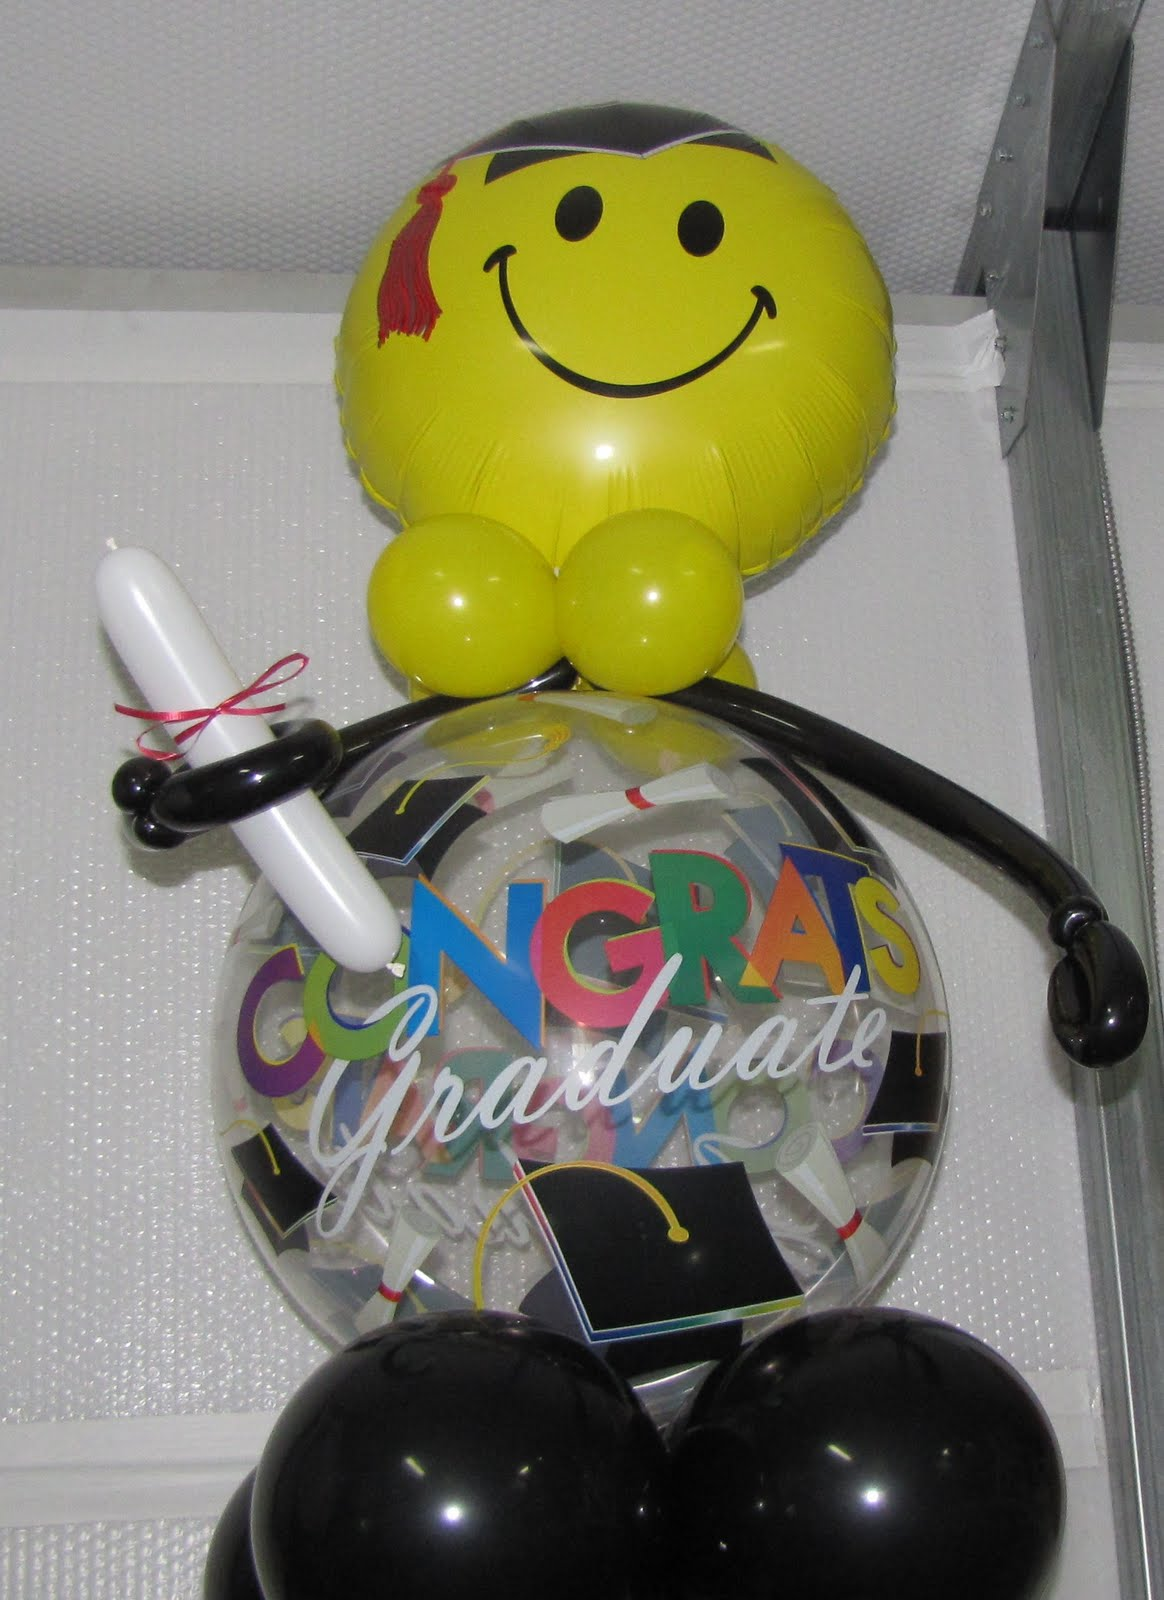 Party people event decorating company may 2011 for Balloon decoration graduation